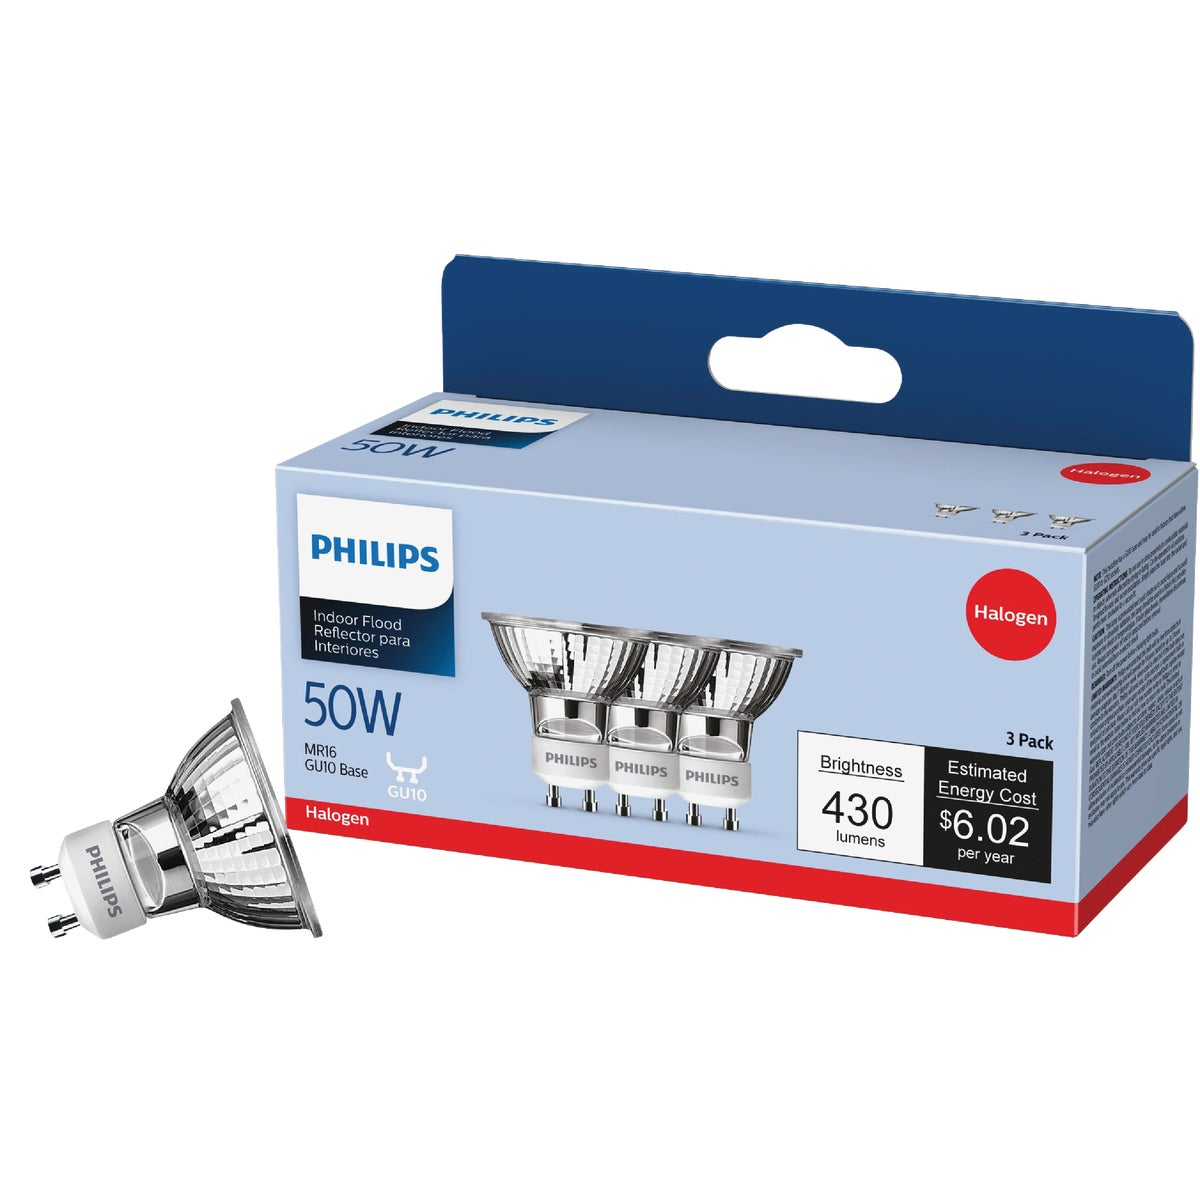 50W MR16 HAL FL 3PK BULB - 81662 by G E Lighting